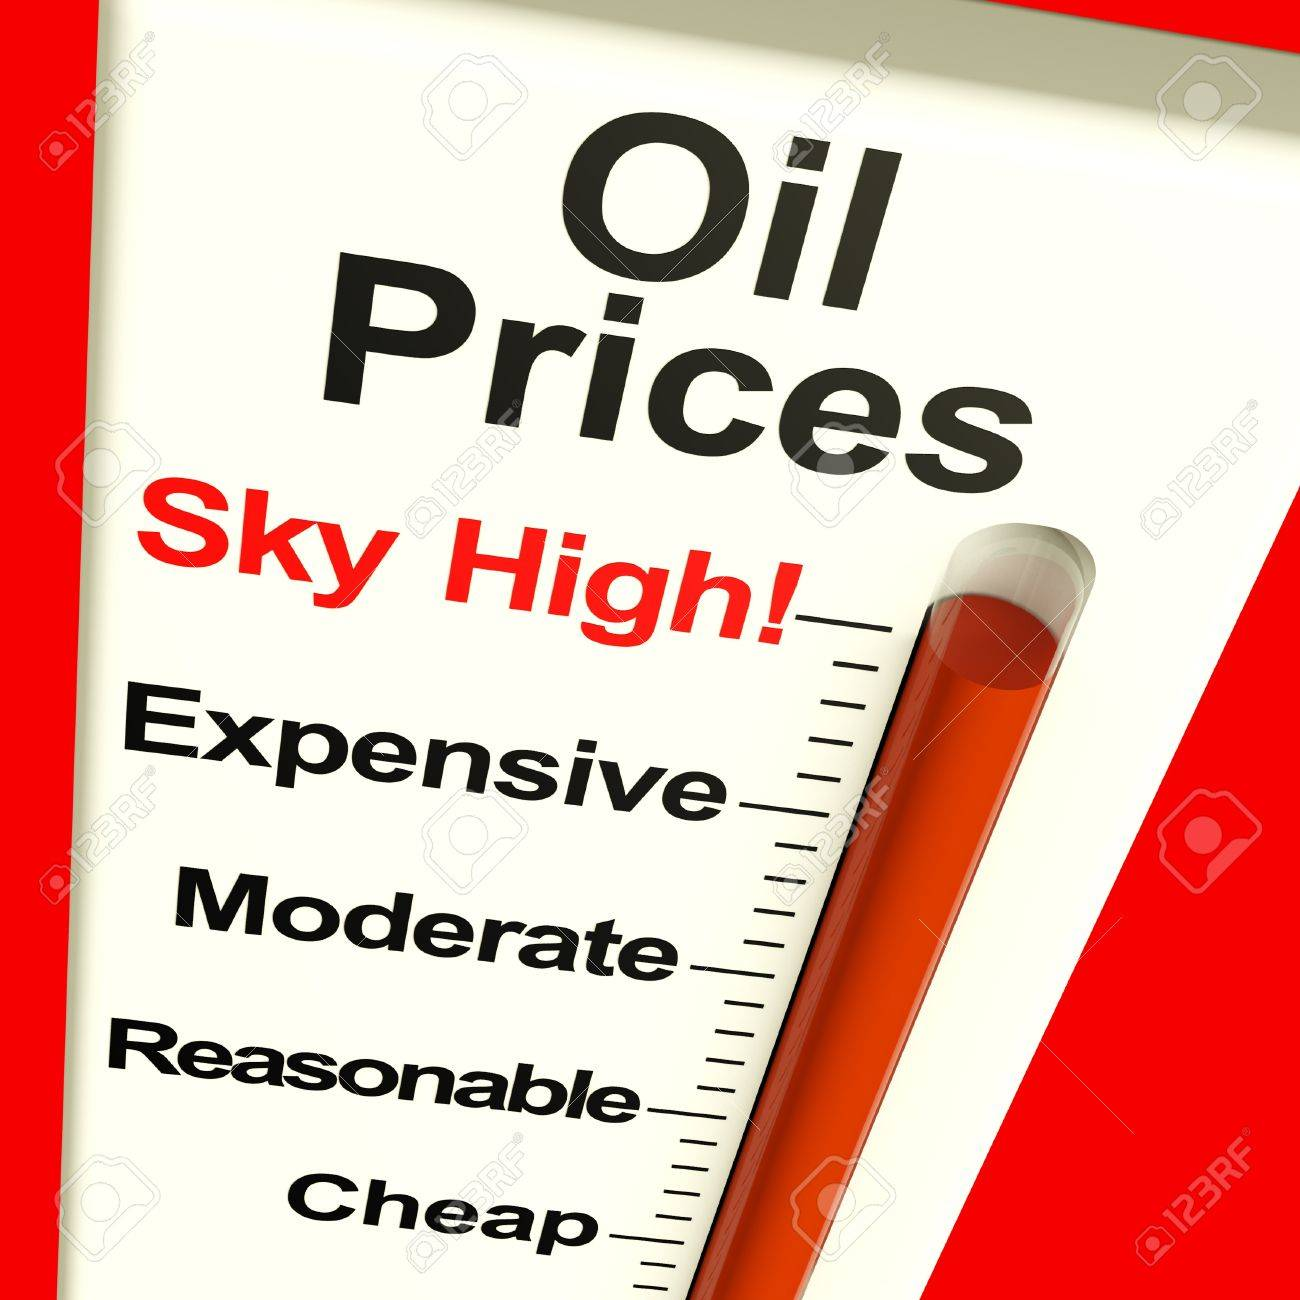 Oil Prices High Monitor Showing Expensive Fuel Cost Stock Photo - 11947985